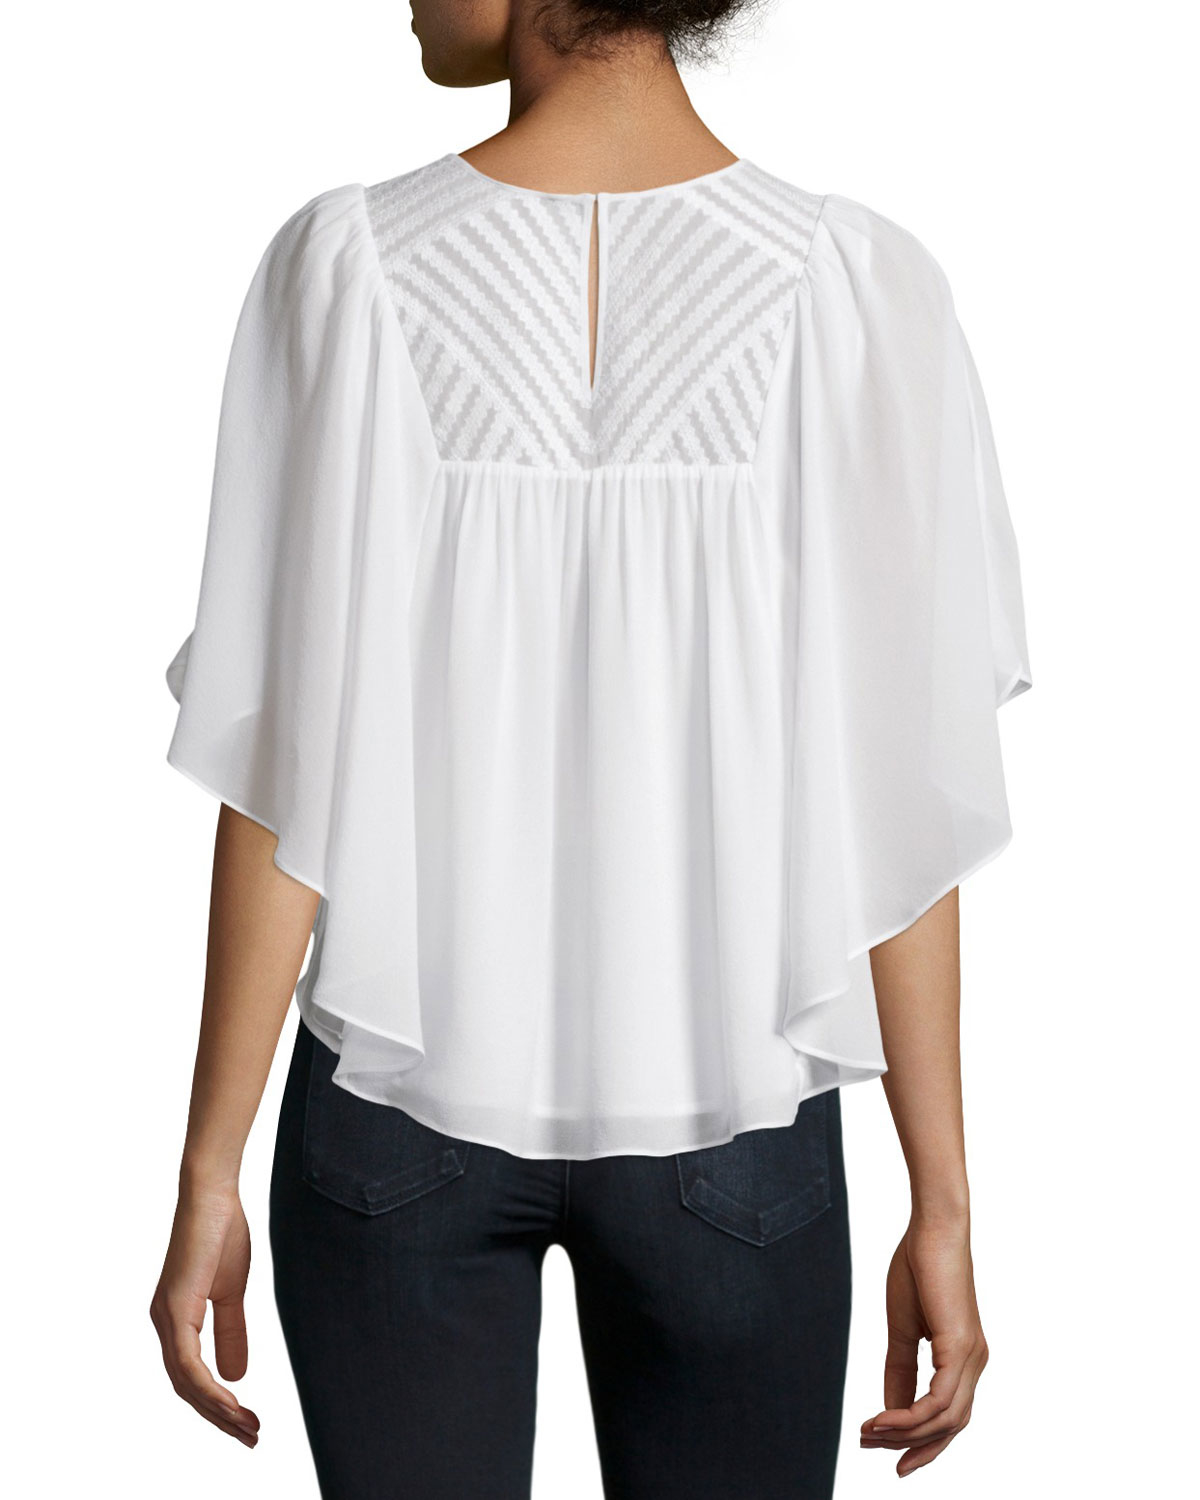 4edfacdd326 Lyst - Joie Patel Embroidered Flowy Top in White